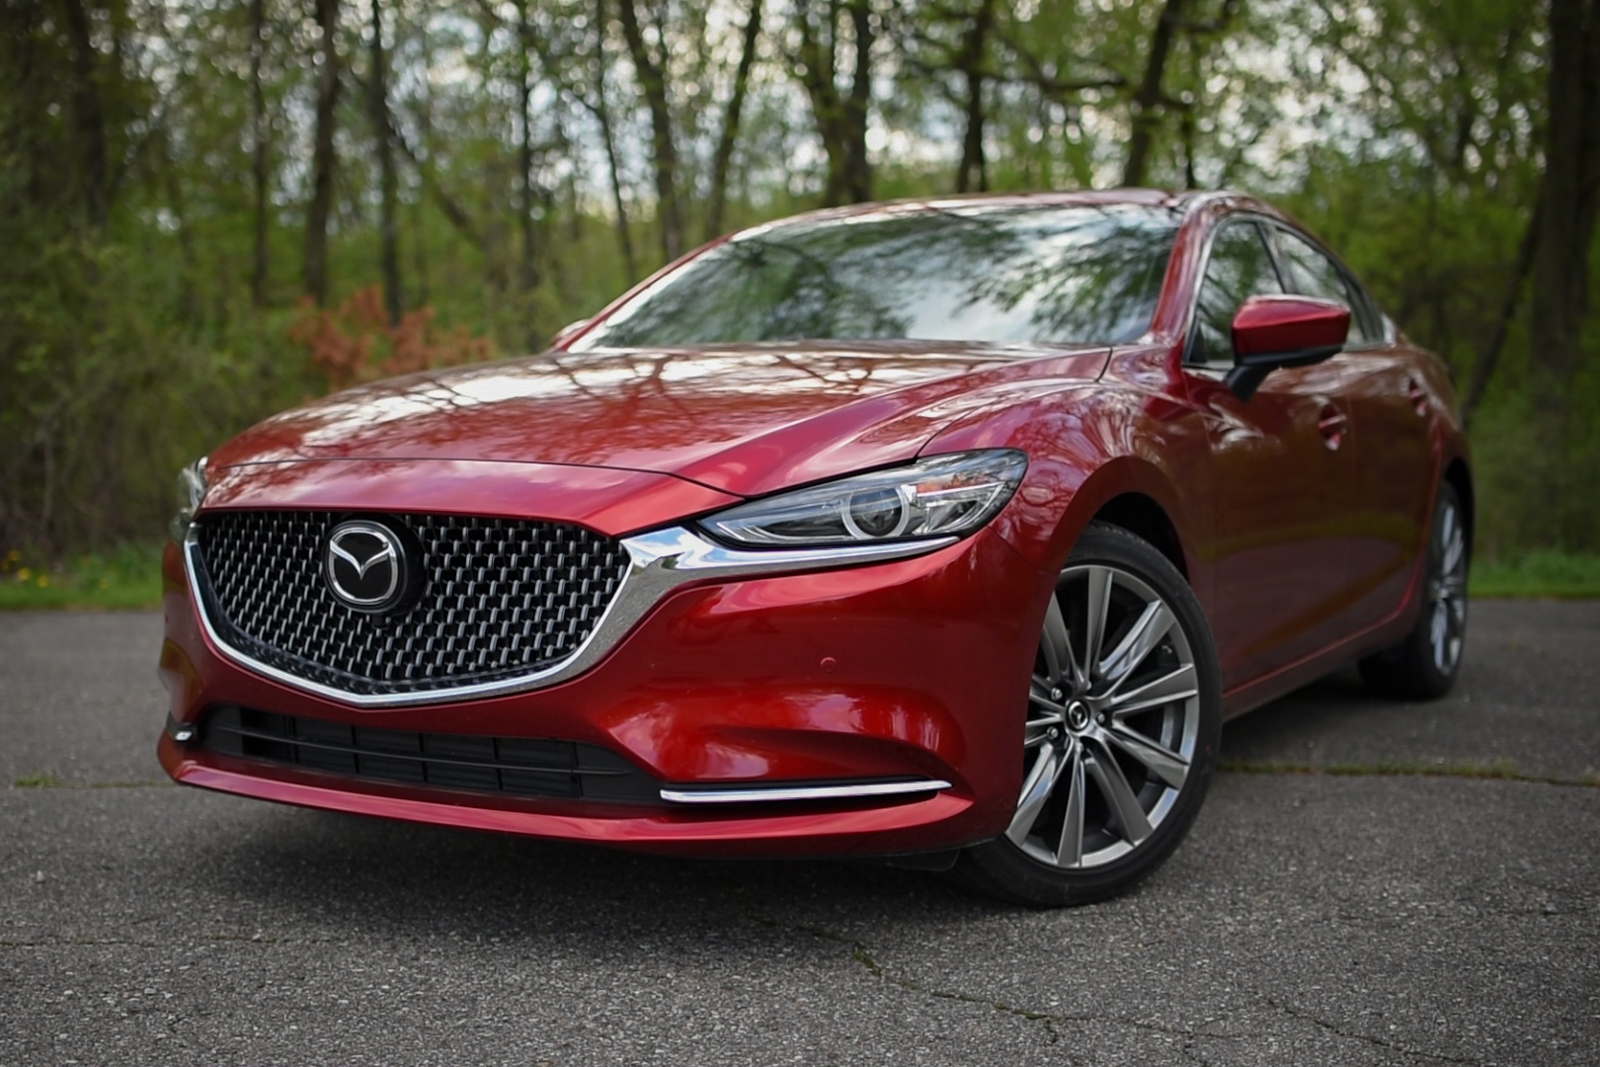 2018 mazda6 turbo review and video. Black Bedroom Furniture Sets. Home Design Ideas